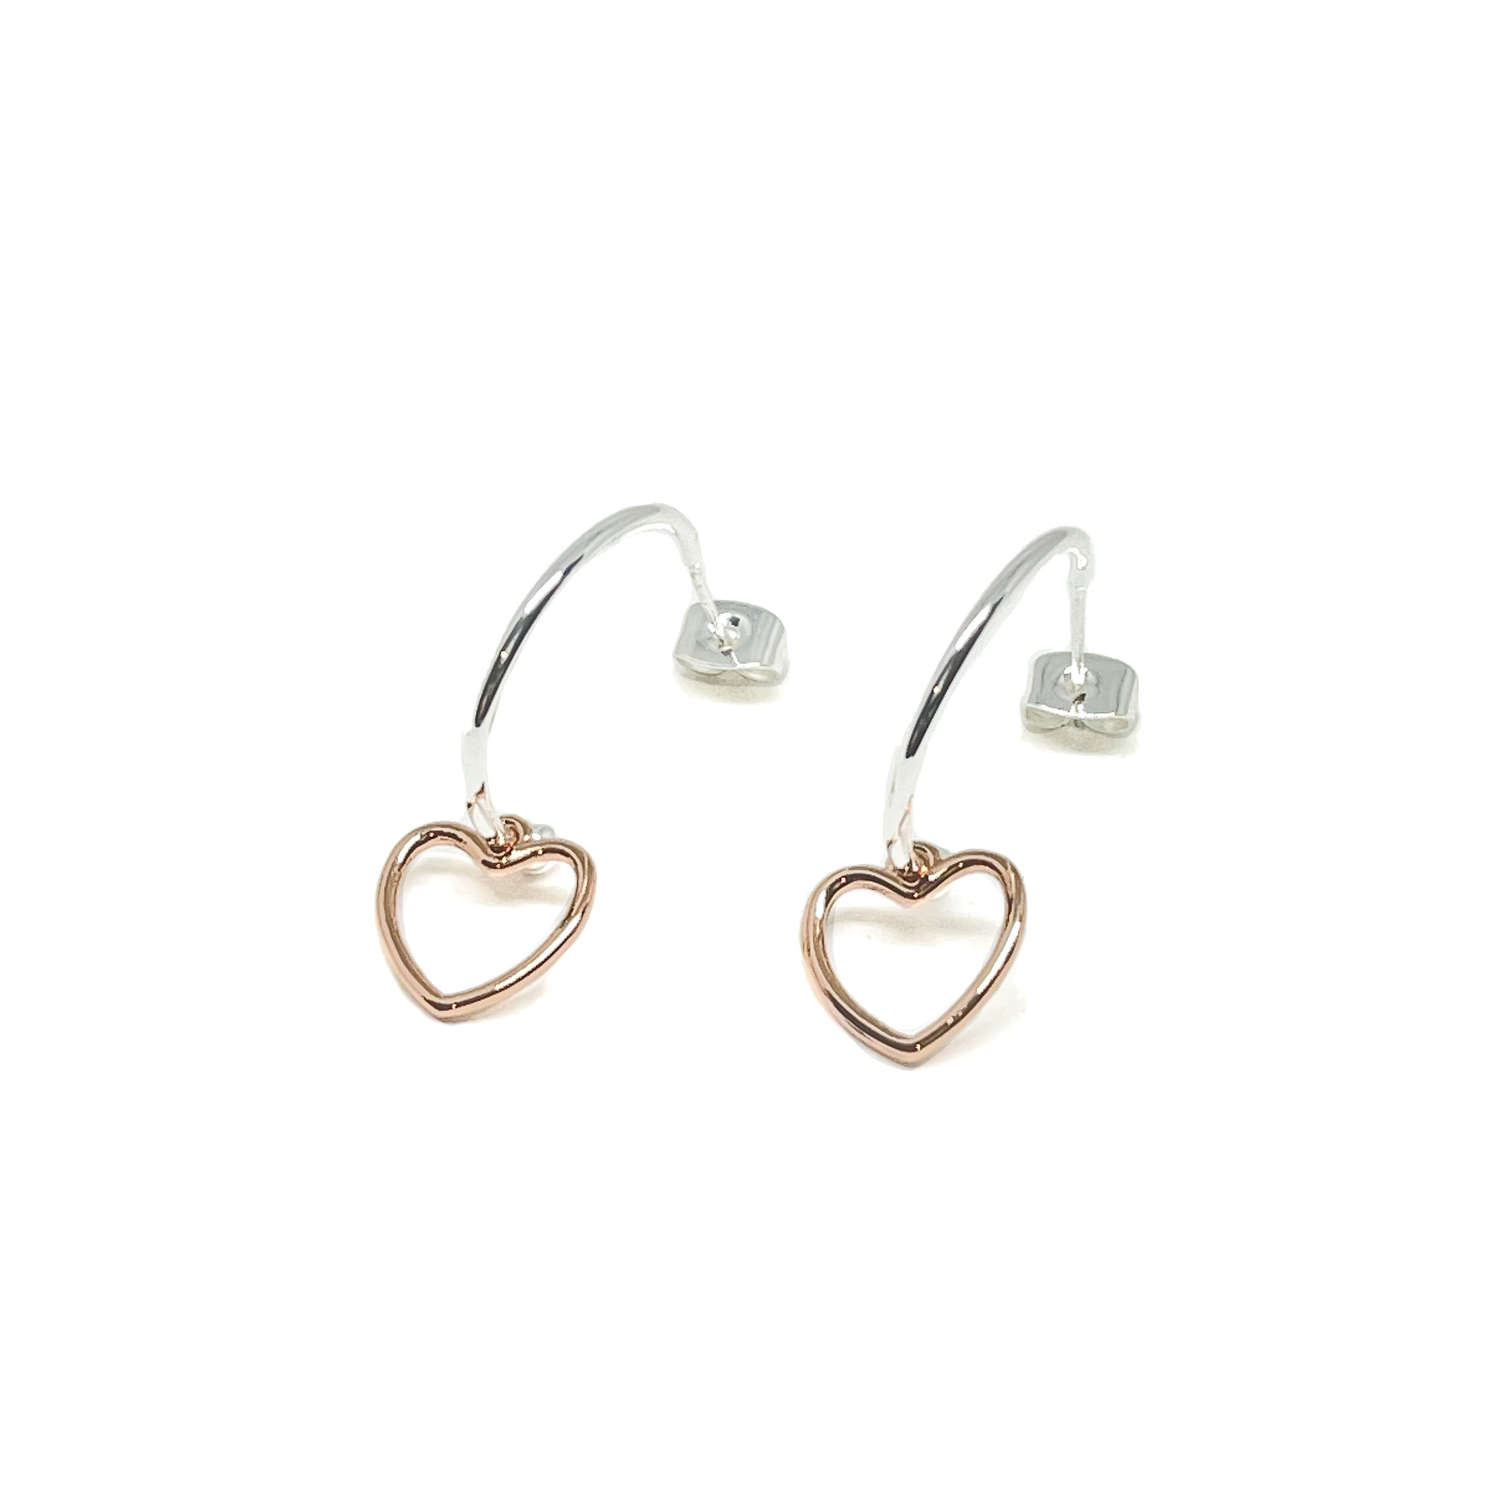 Selena Heart Sterling Silver Hoop Earrings - Rose Gold